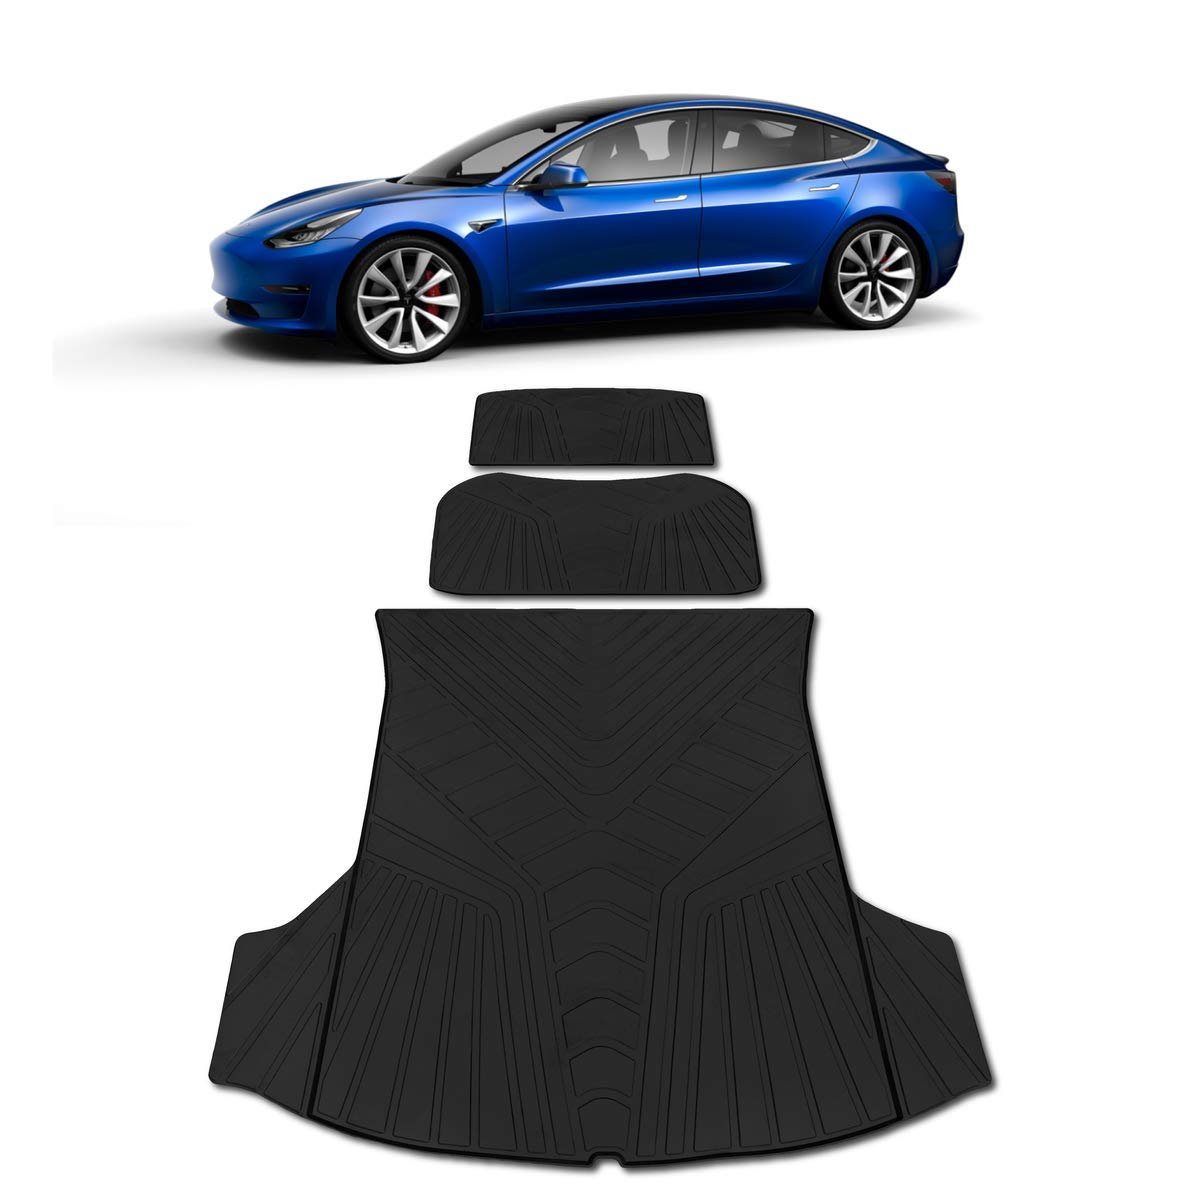 Tesla Model 3 Trunk Frunk Storage Mat - Set of 3 All Weather Waterproof Black Cargo Protection | Fits 2017 2018 2019 2020 | Heavy Duty & Odorless Eco-Friendly Latex Material by HEA USA